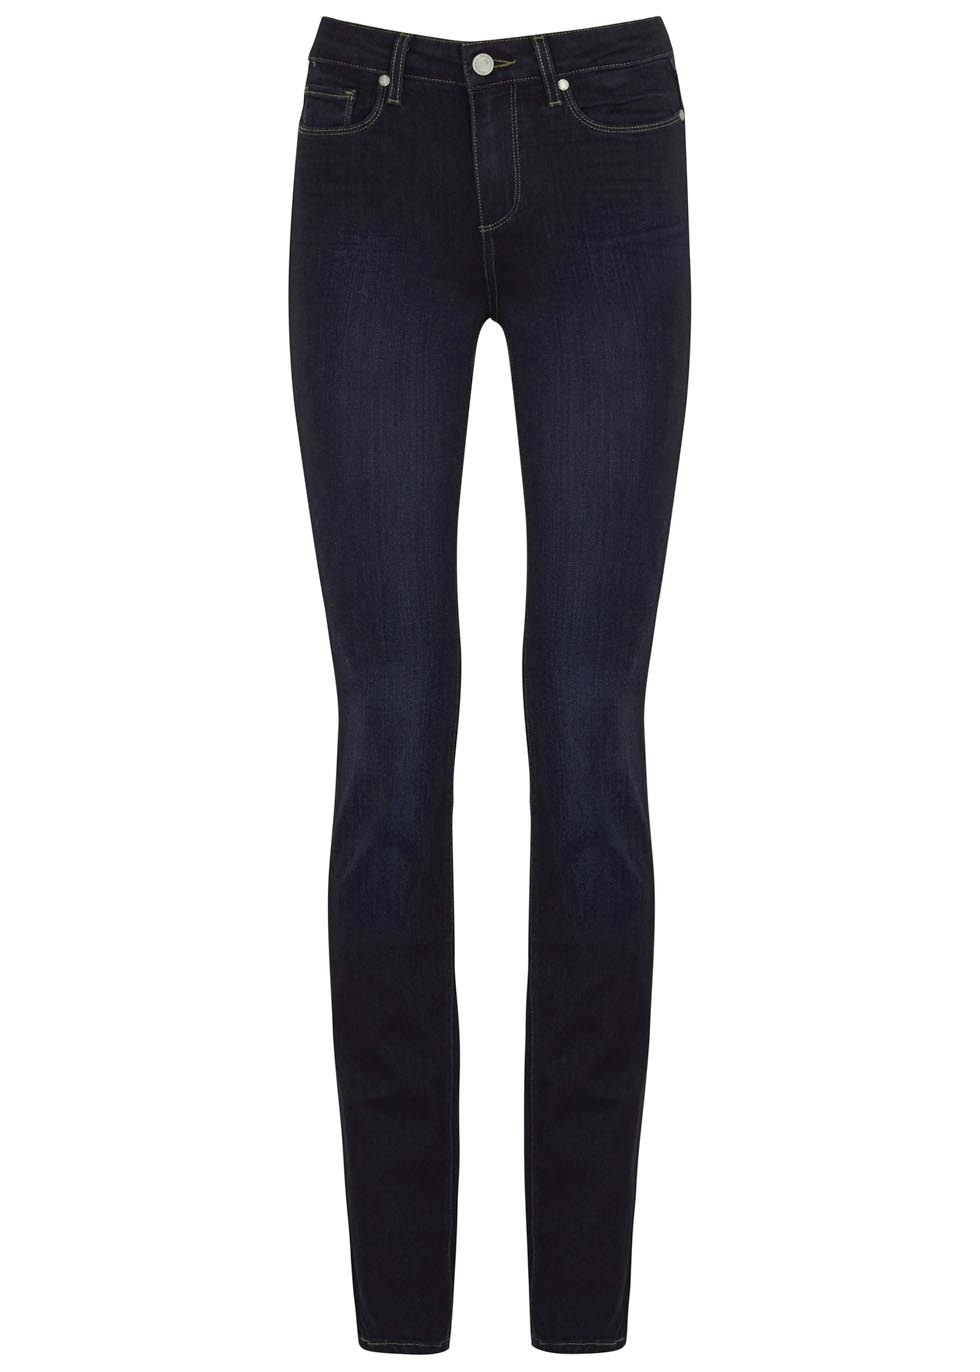 Hoxton Indigo Transcend Straight Jeans - style: straight leg; length: standard; pattern: plain; pocket detail: traditional 5 pocket; waist: mid/regular rise; predominant colour: navy; occasions: casual; fibres: cotton - stretch; texture group: denim; pattern type: fabric; season: s/s 2016; wardrobe: basic